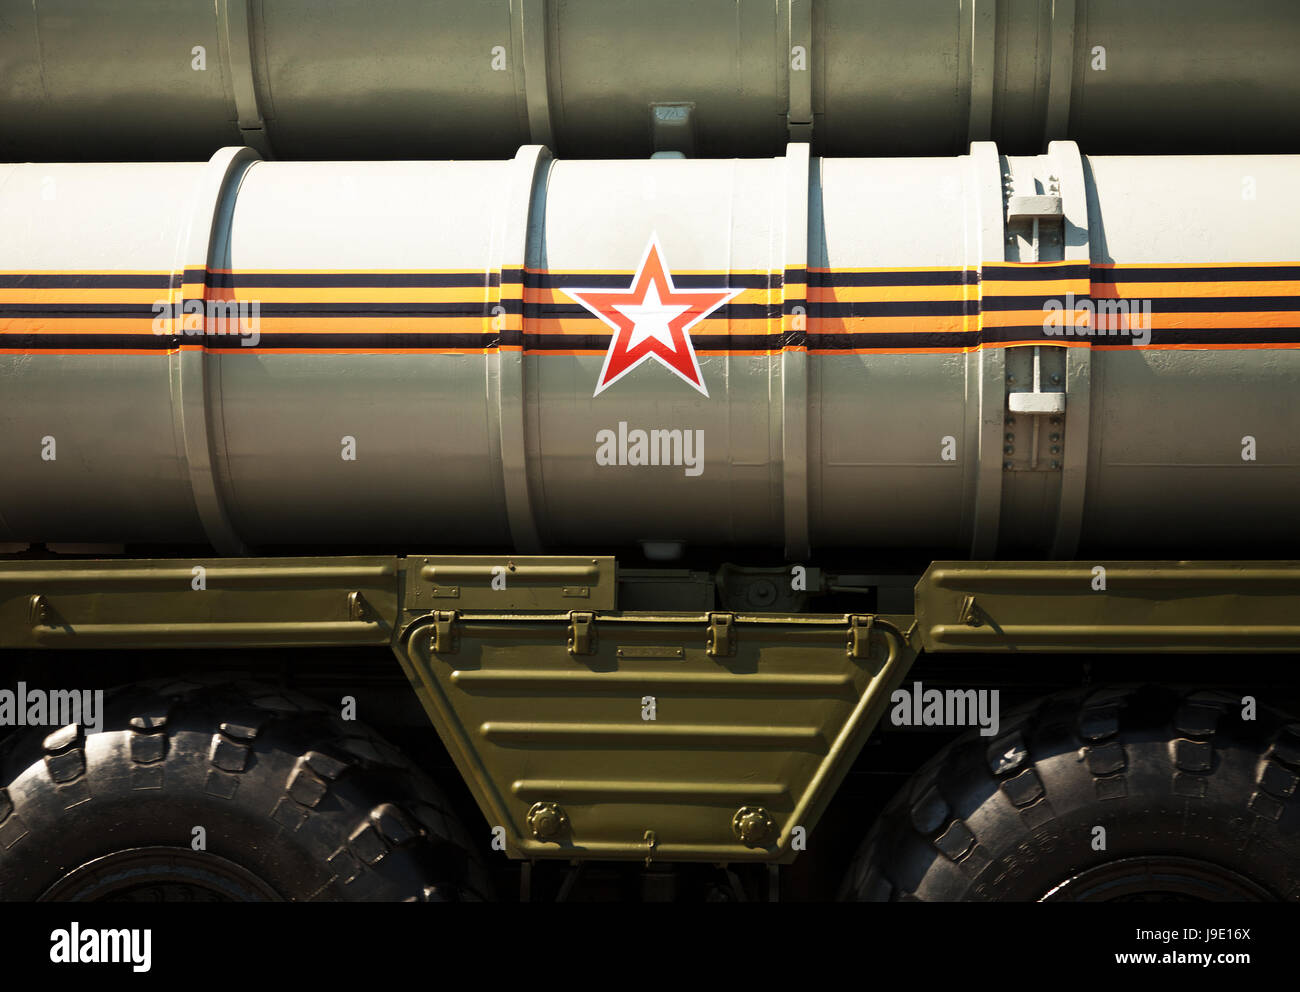 Russian army background: rocket launcher decorated with St. George ribbon and a star symbol. Missile system vehicle - Stock Image